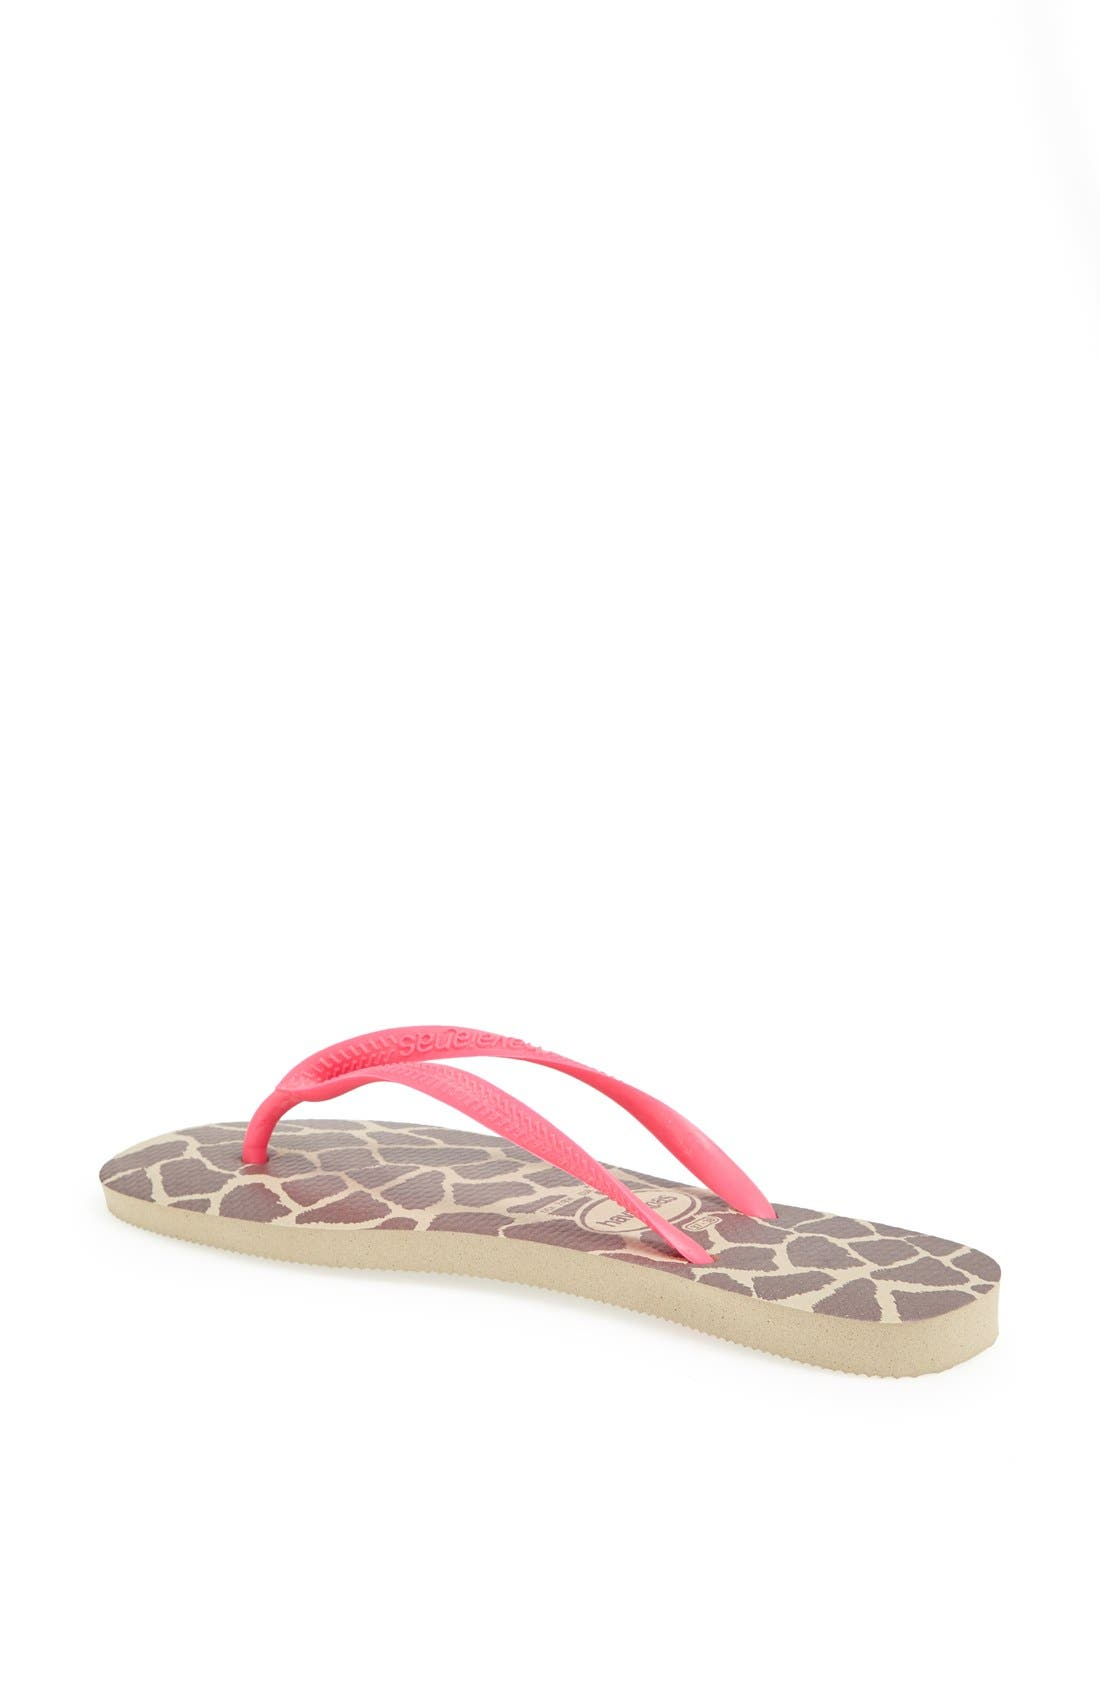 Alternate Image 2  - Havaianas 'Slim Fluorescent Animal' Sandal (Women)